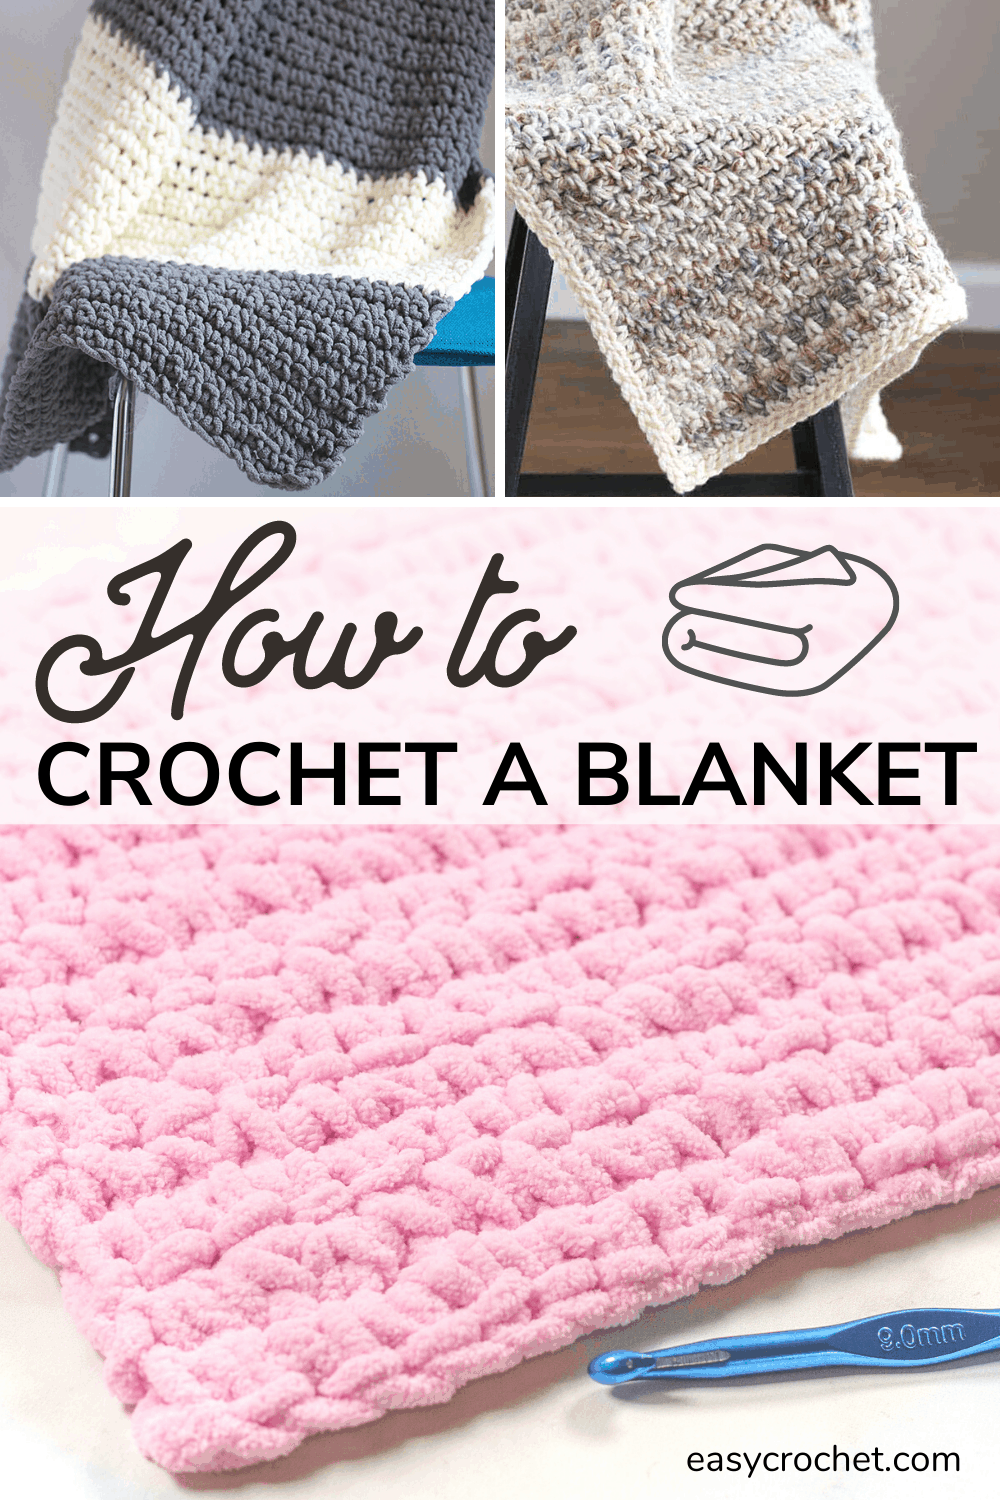 How to Crochet a Blanket